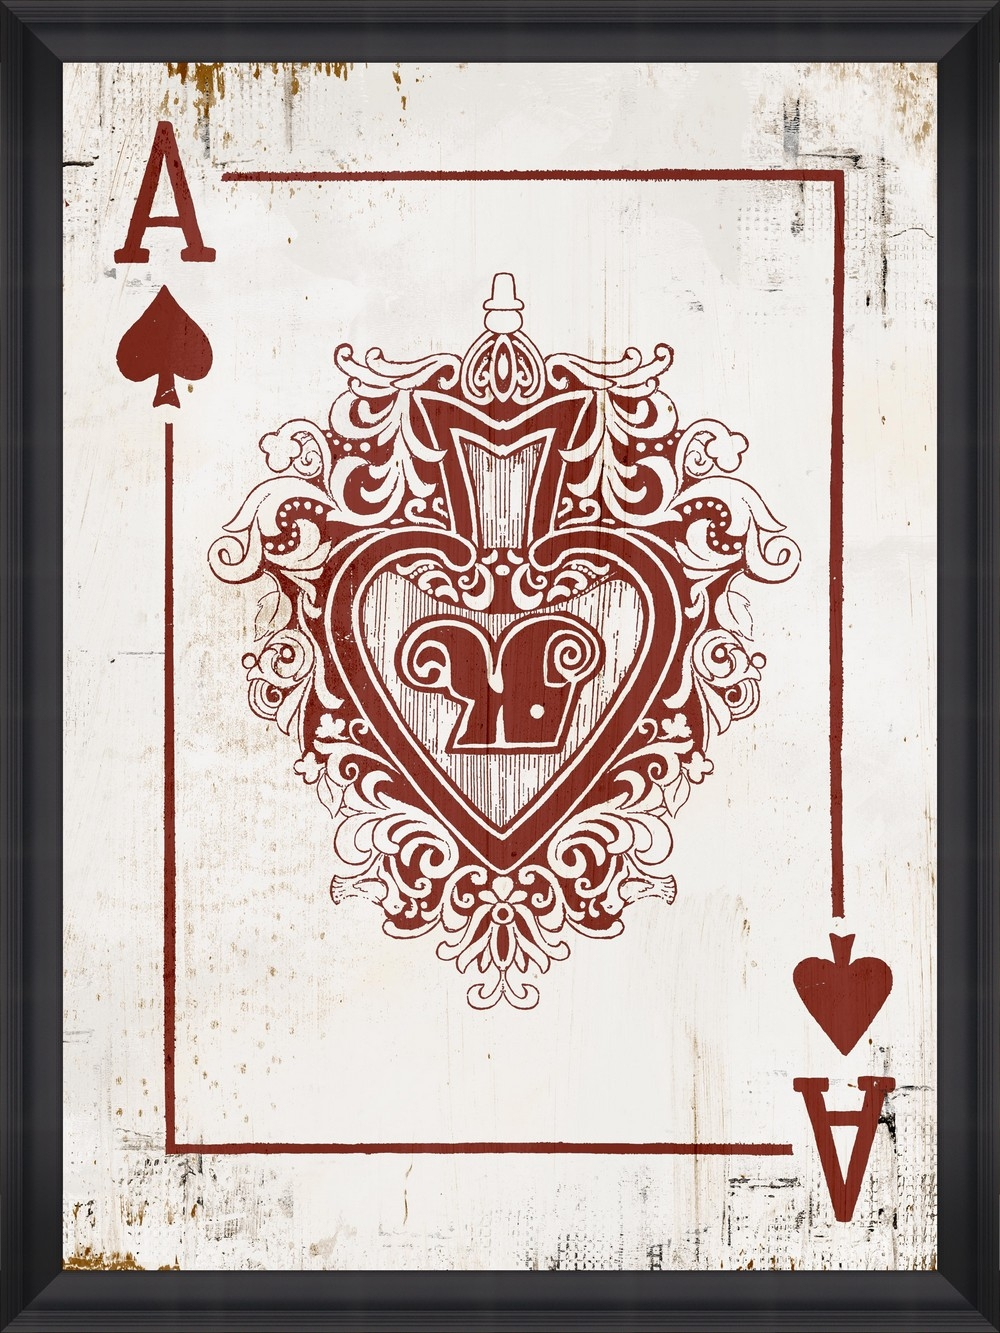 Tablou Framed Art Play Cards III din categoria Tablouri Inramate